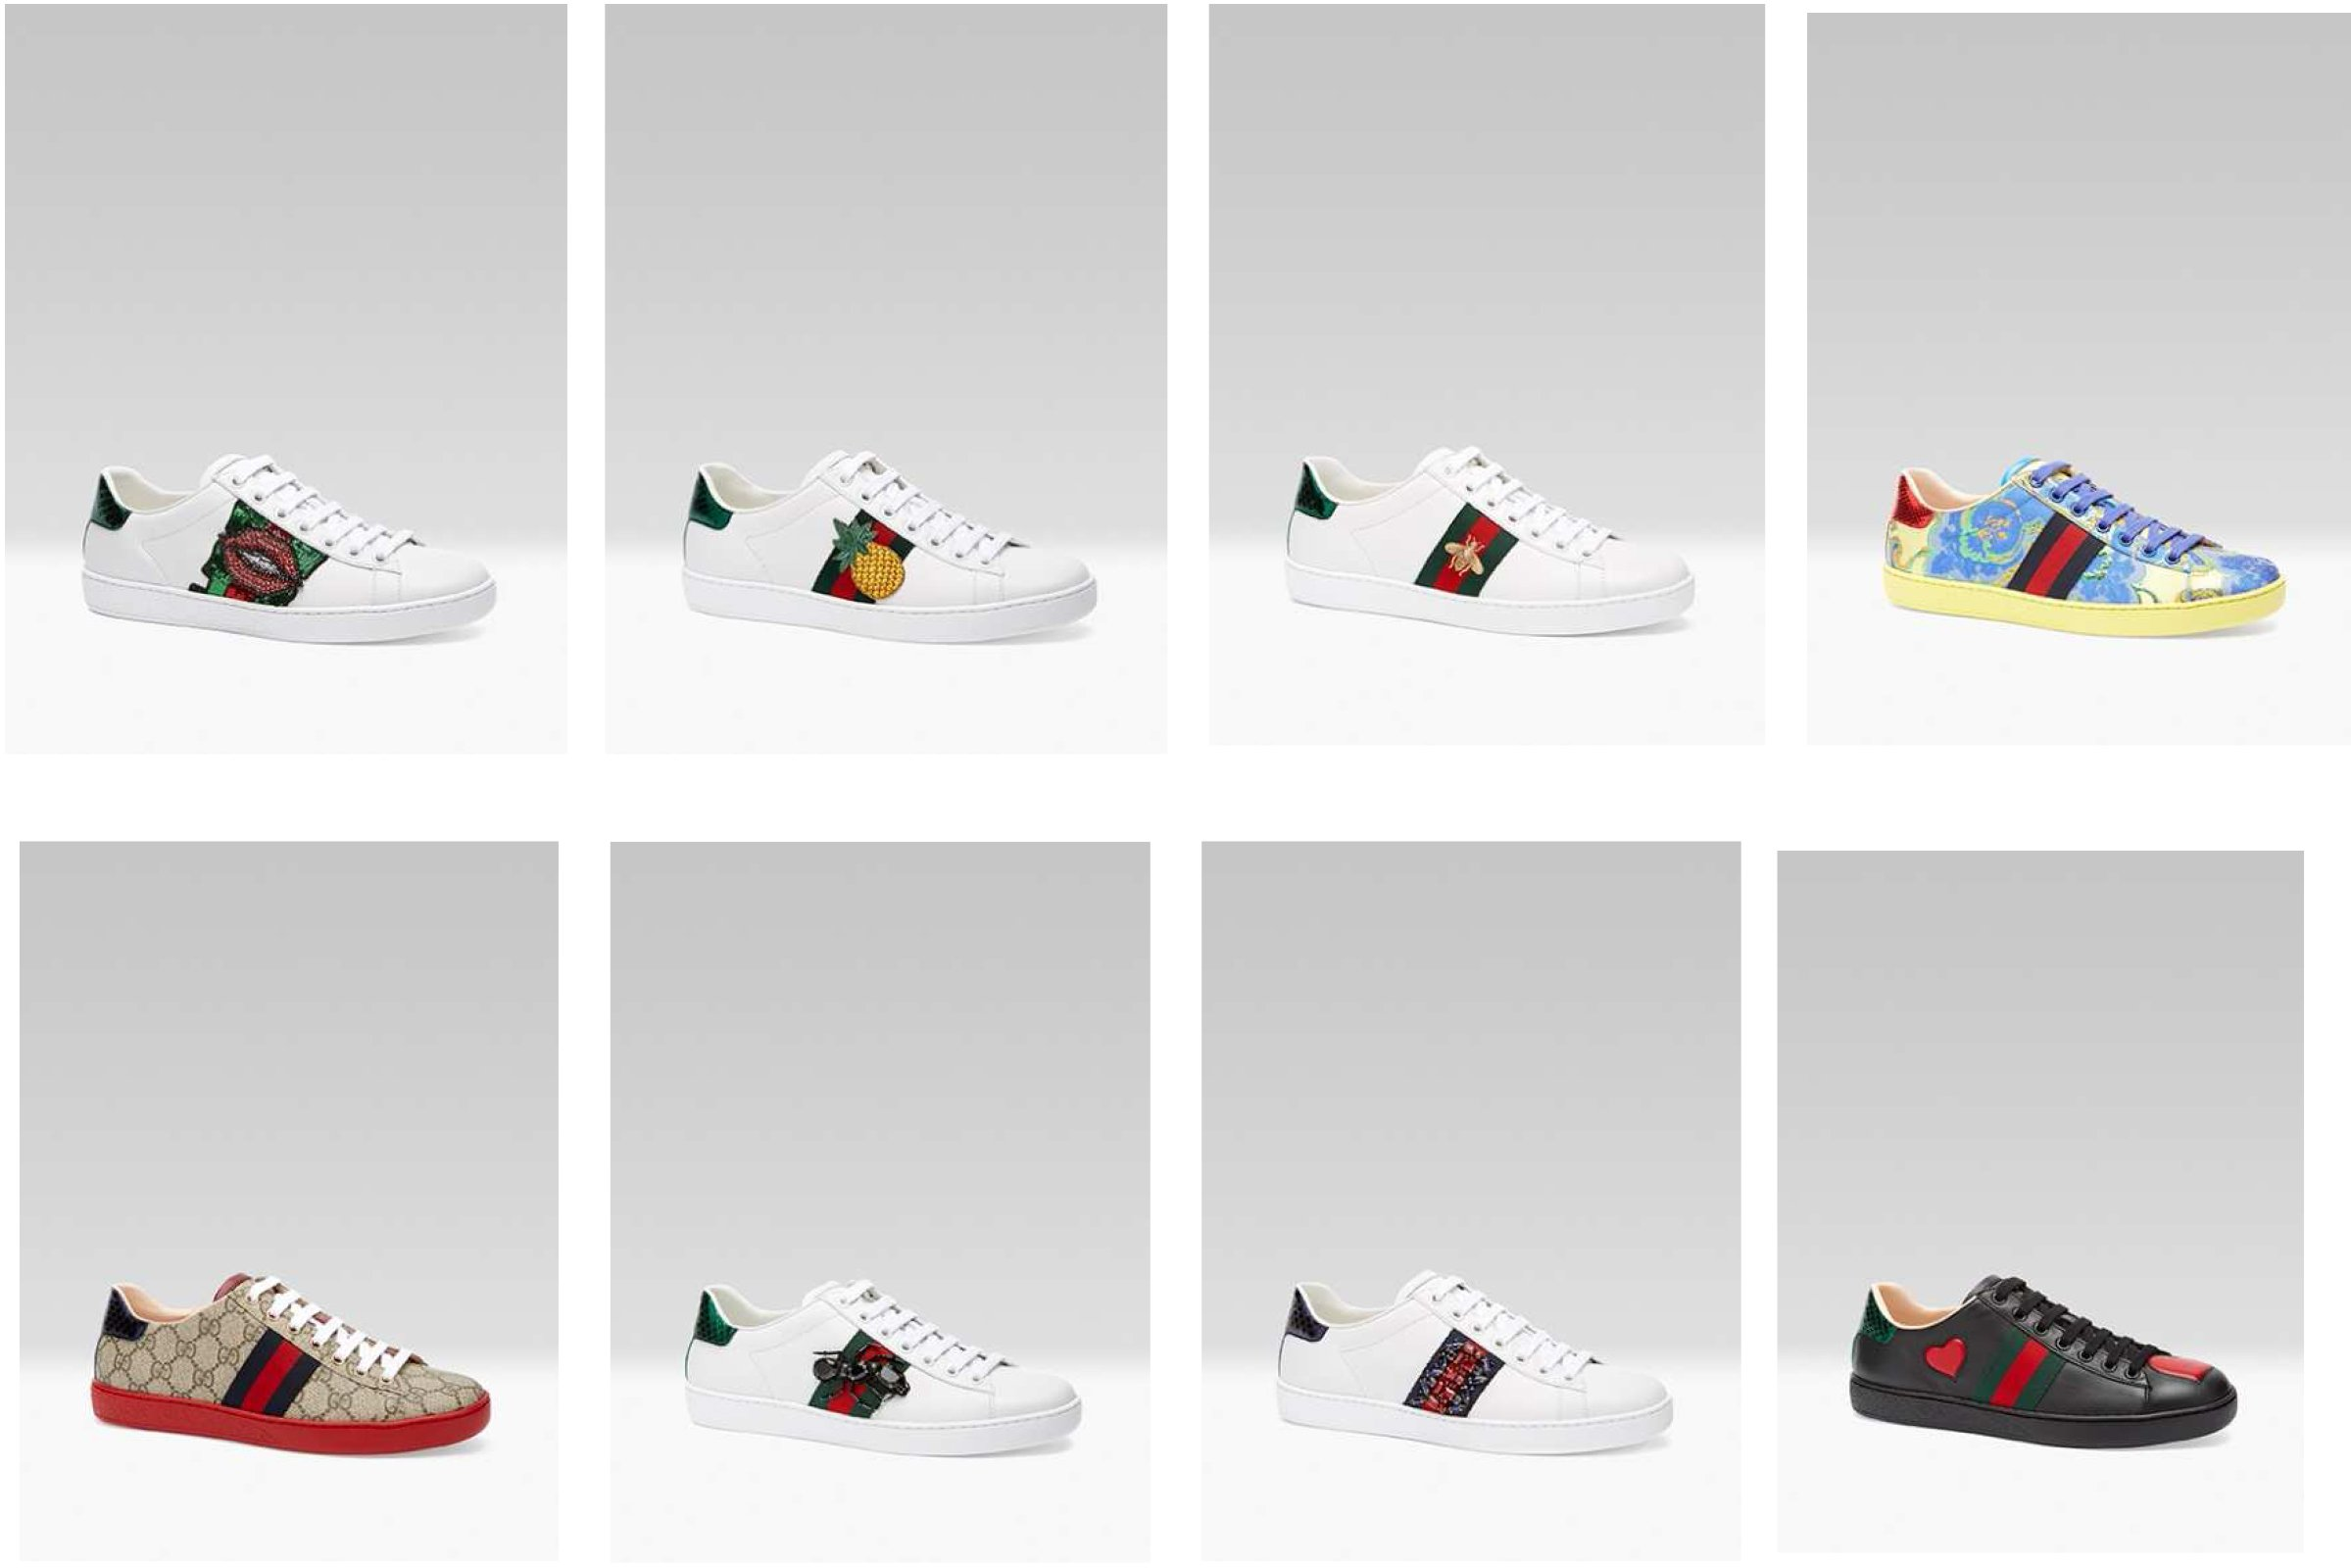 Hottest Gucci Sneakers of 2017 - Big